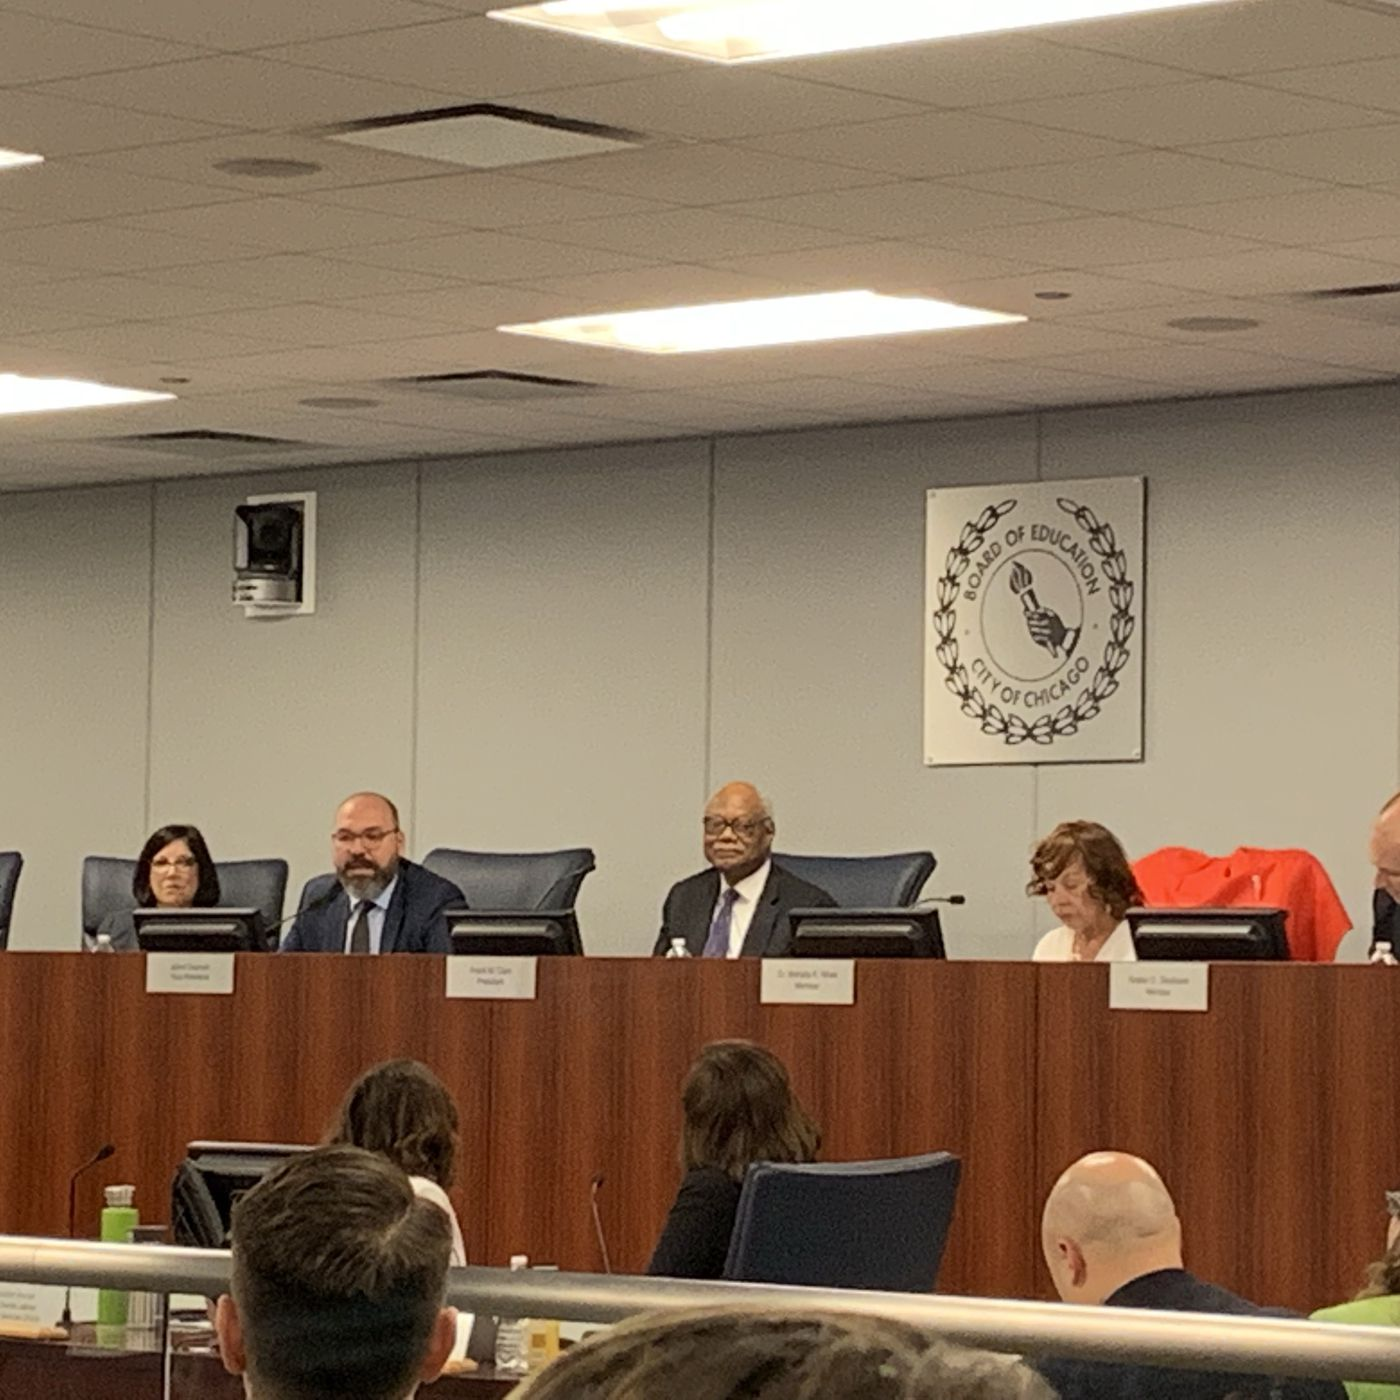 suntimes.com - Mitchell Armentrout - Chicago Board of Education members step down